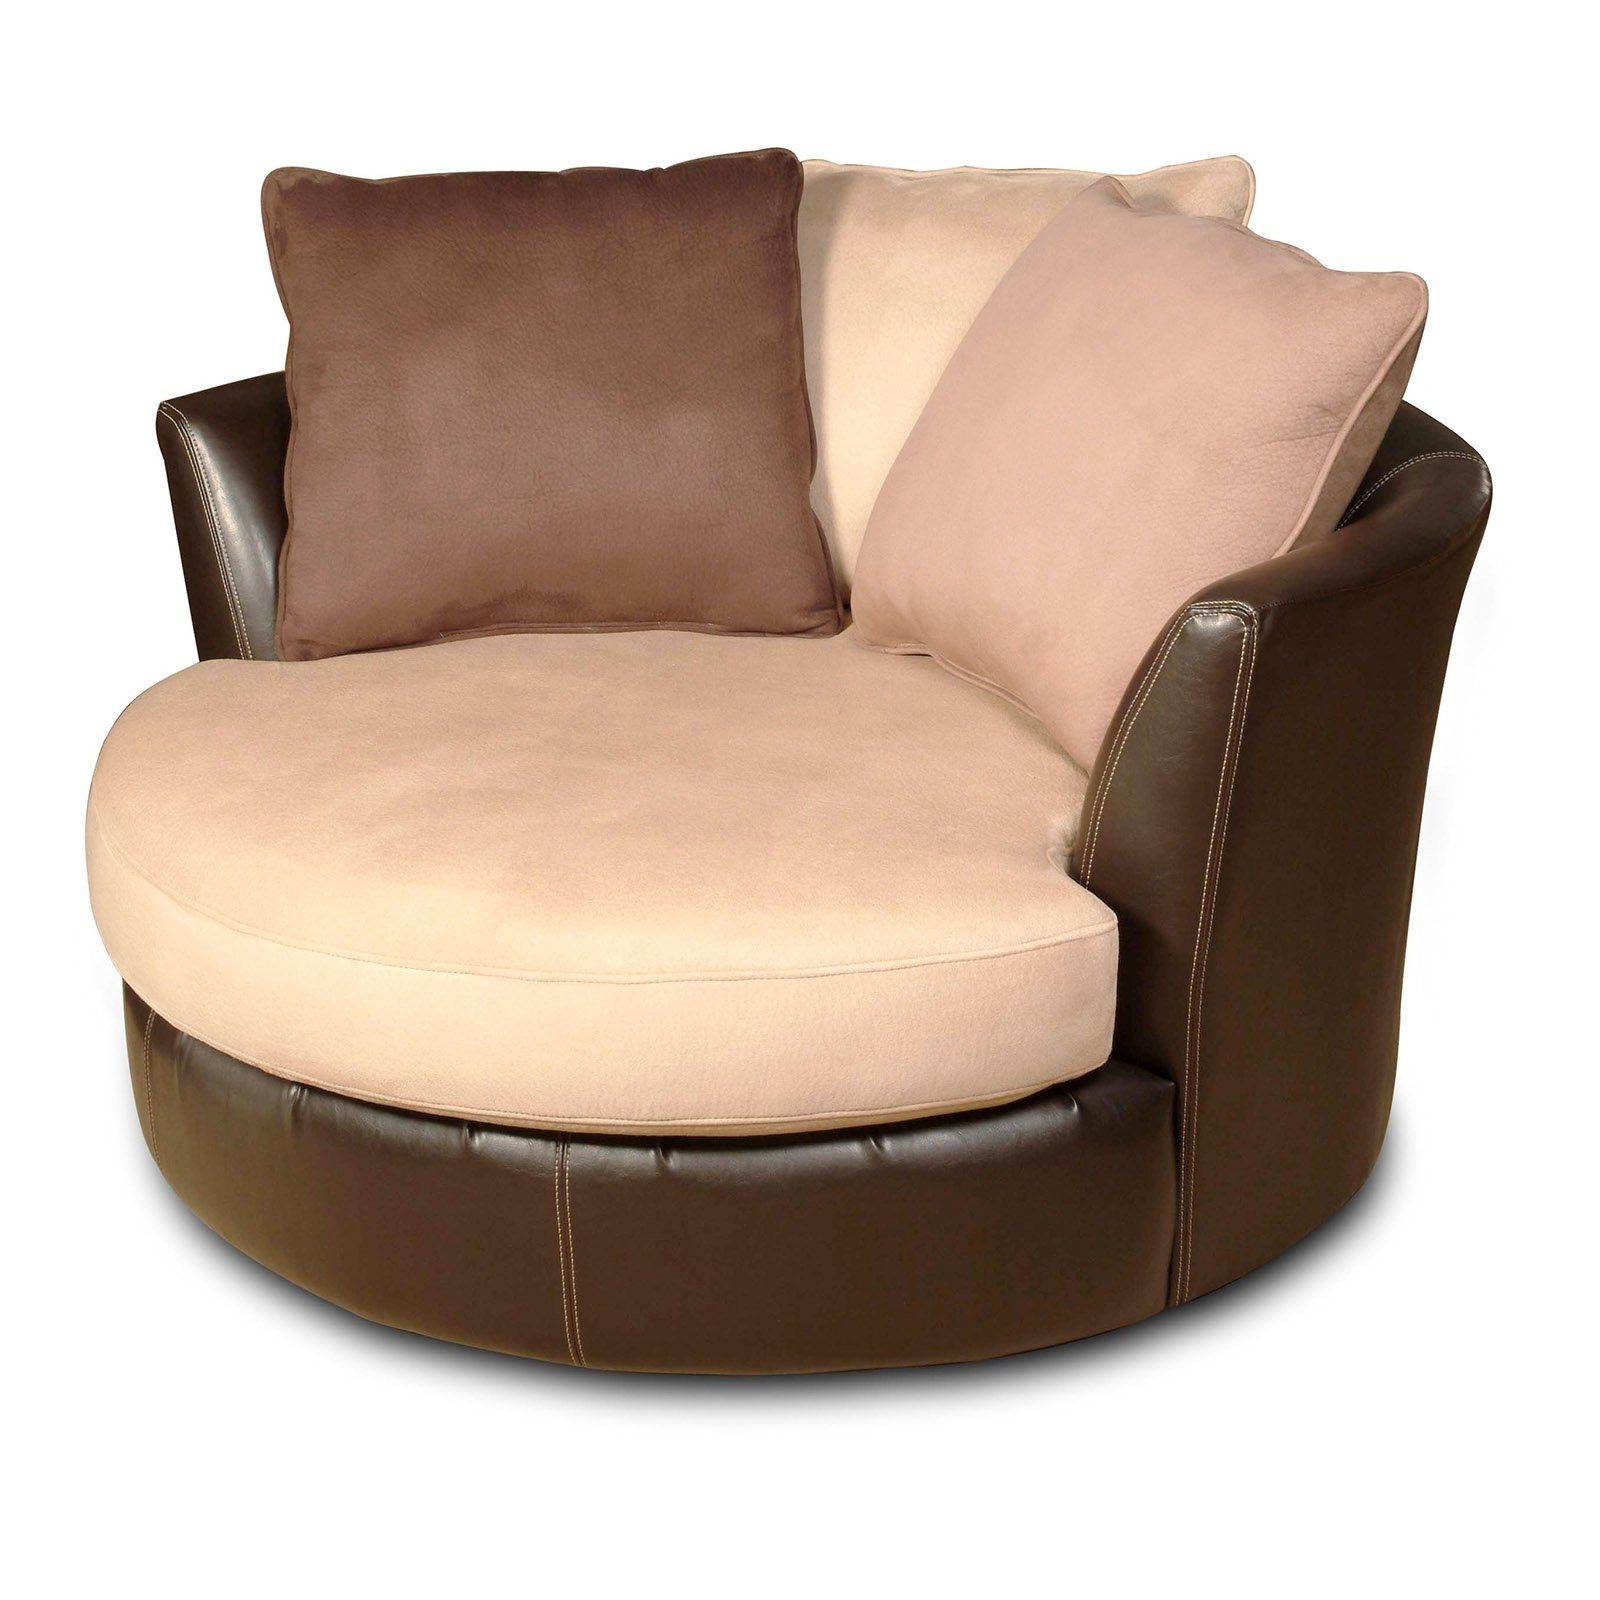 Newest Chelsea Home Furniture Newport Swivel Chair – Laredo Mocha (View 6 of 20)